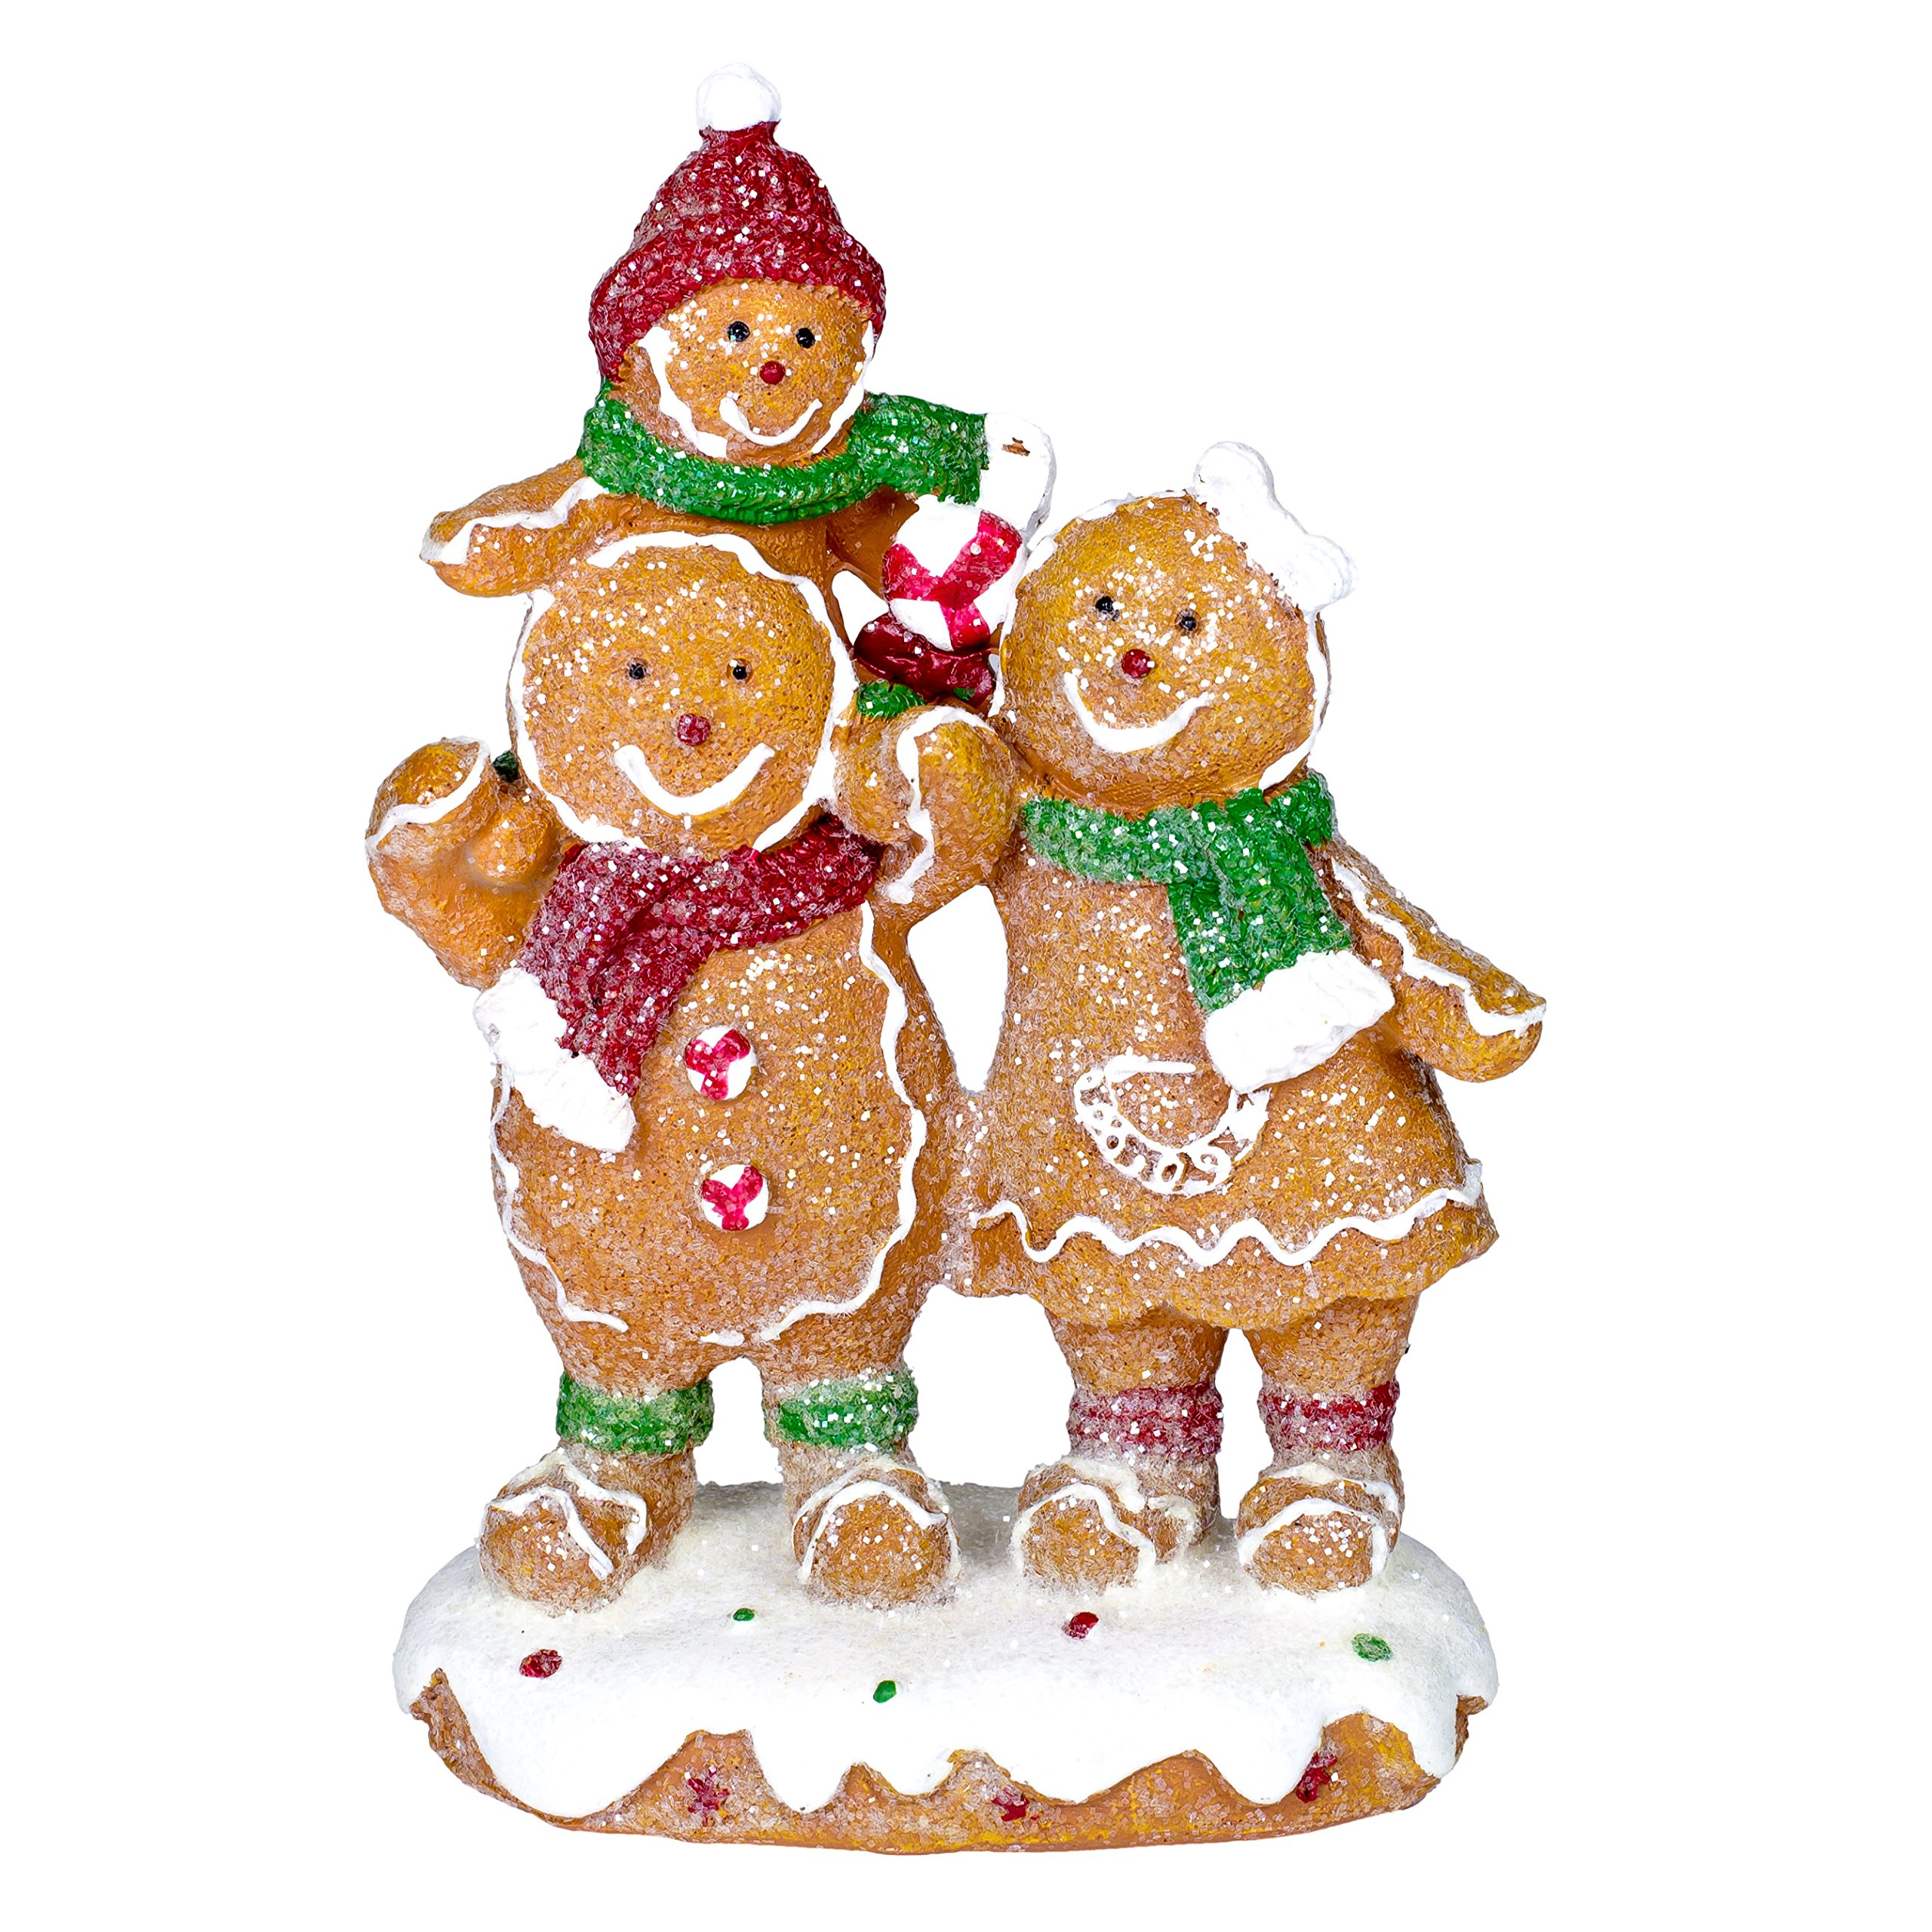 Gingerbread Family Glitter 4.5 x 6 Inch Resin Tabletop Christmas Figurine